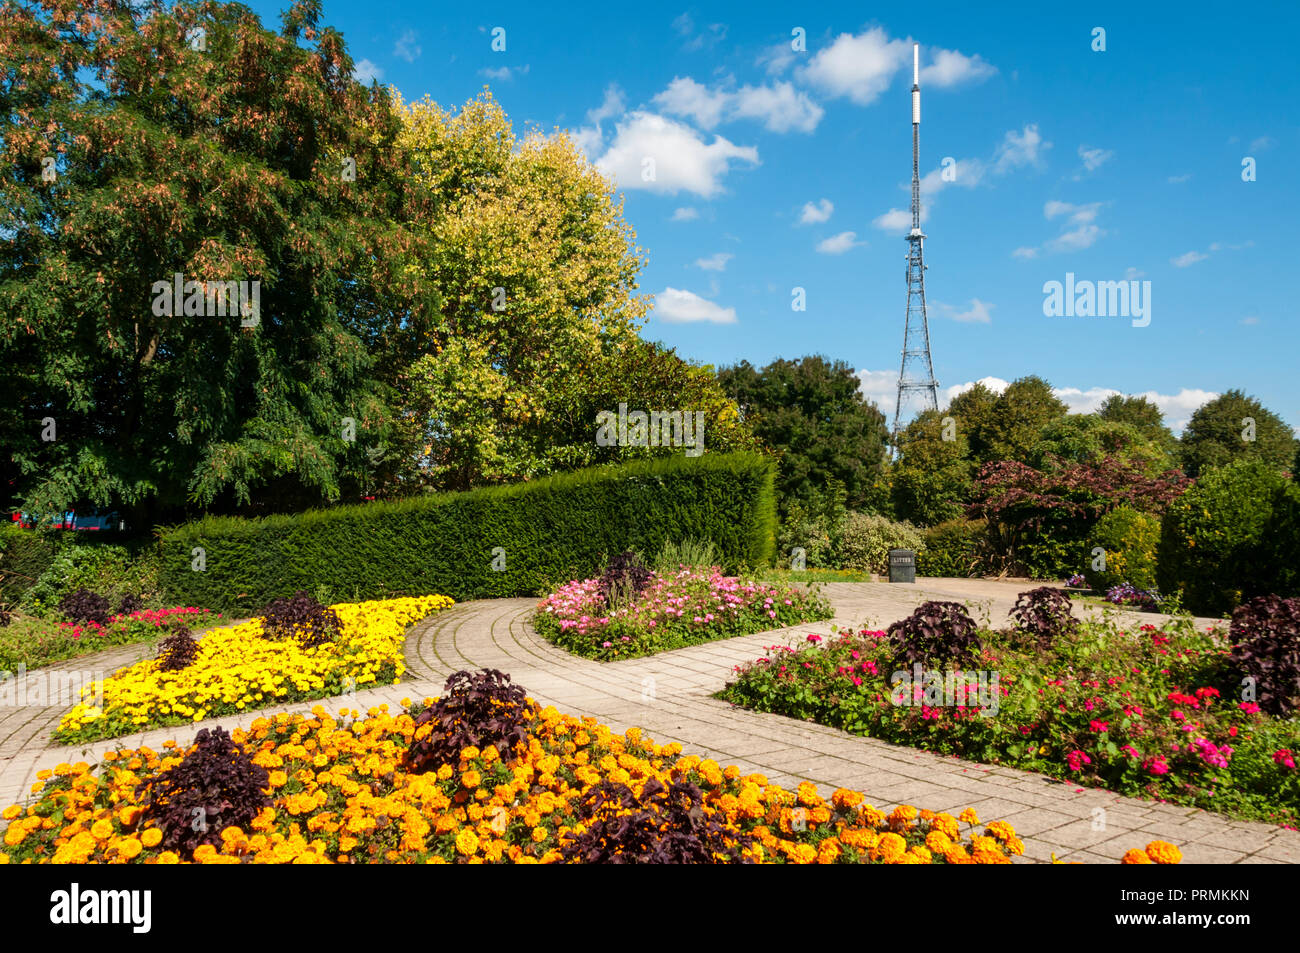 Crystal Palace TV aerial seen over colourful flower beds in Crystal Palace Park. - Stock Image